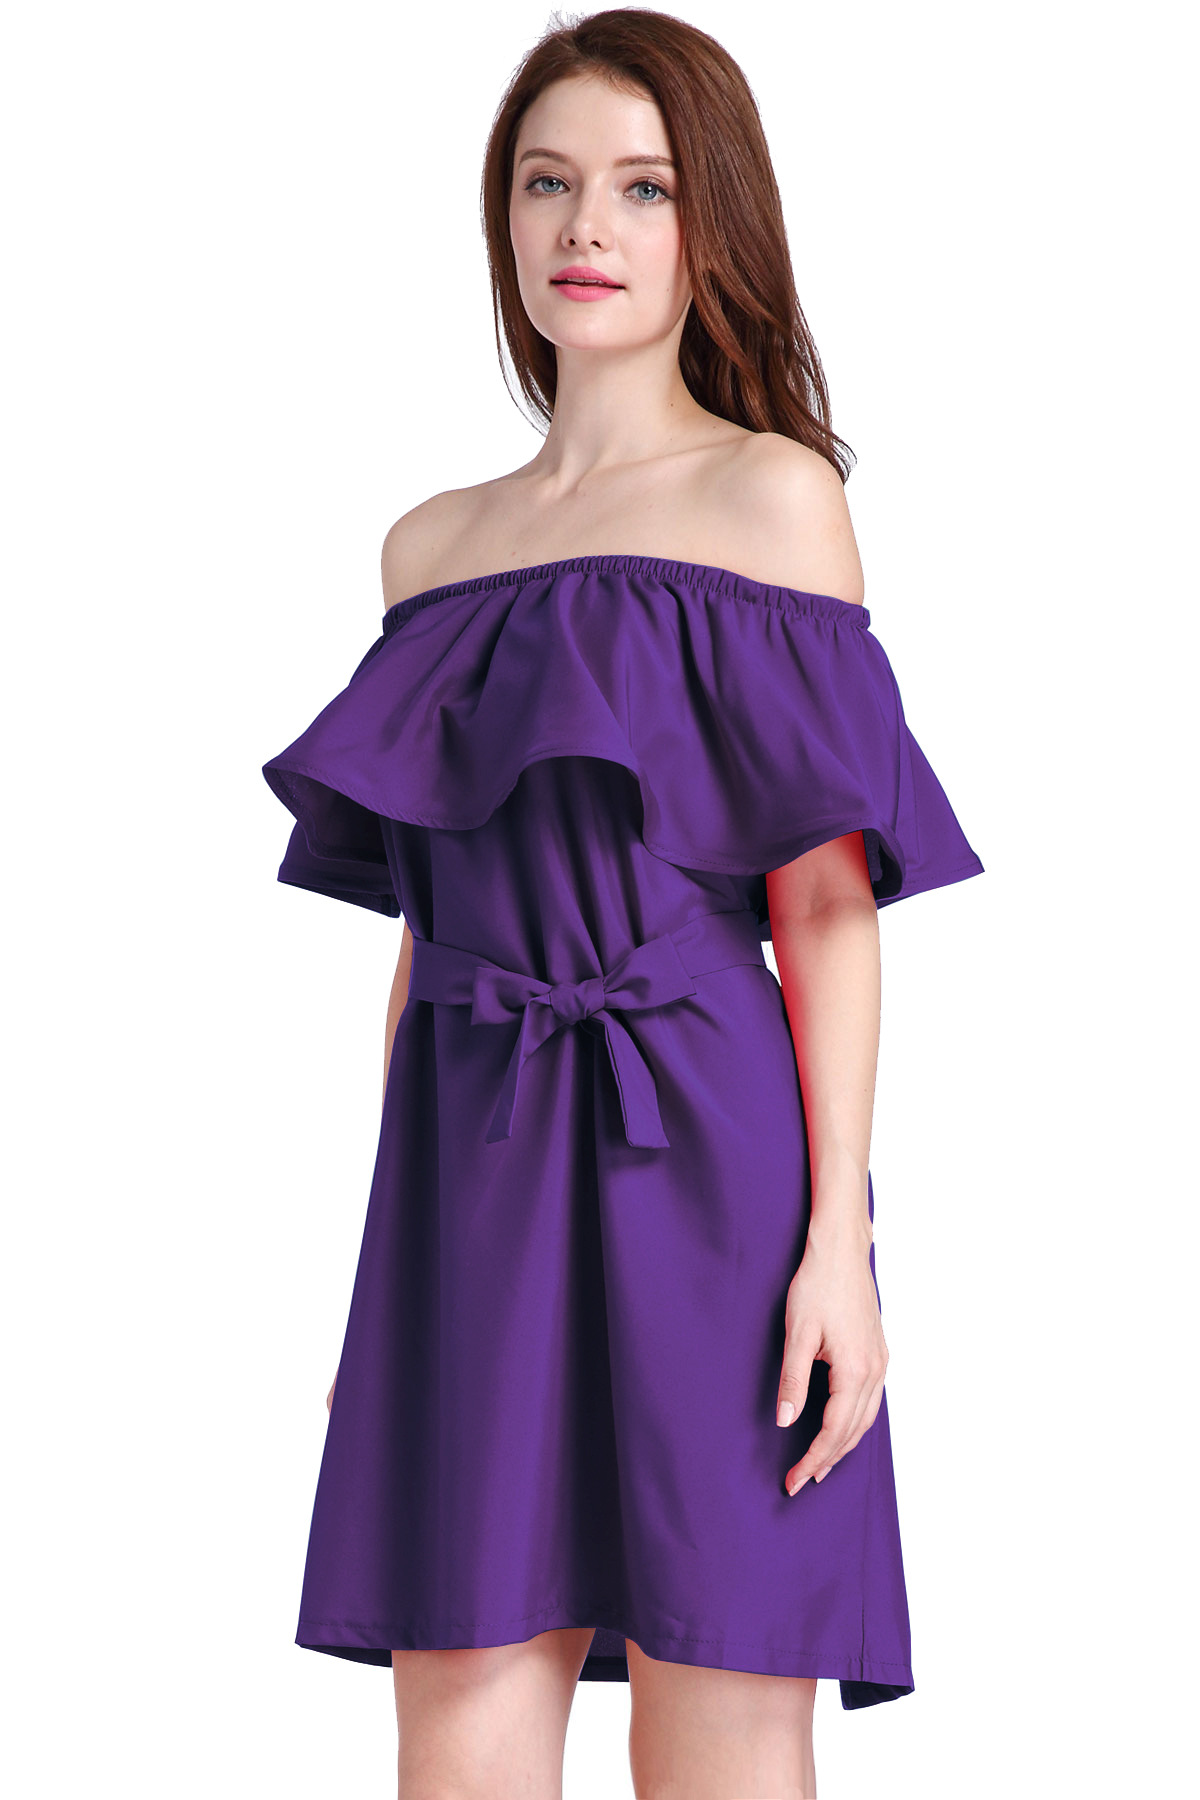 Purple Ruffled Off-The-Shoulder Short Dress Featuring Bow Accent Belt